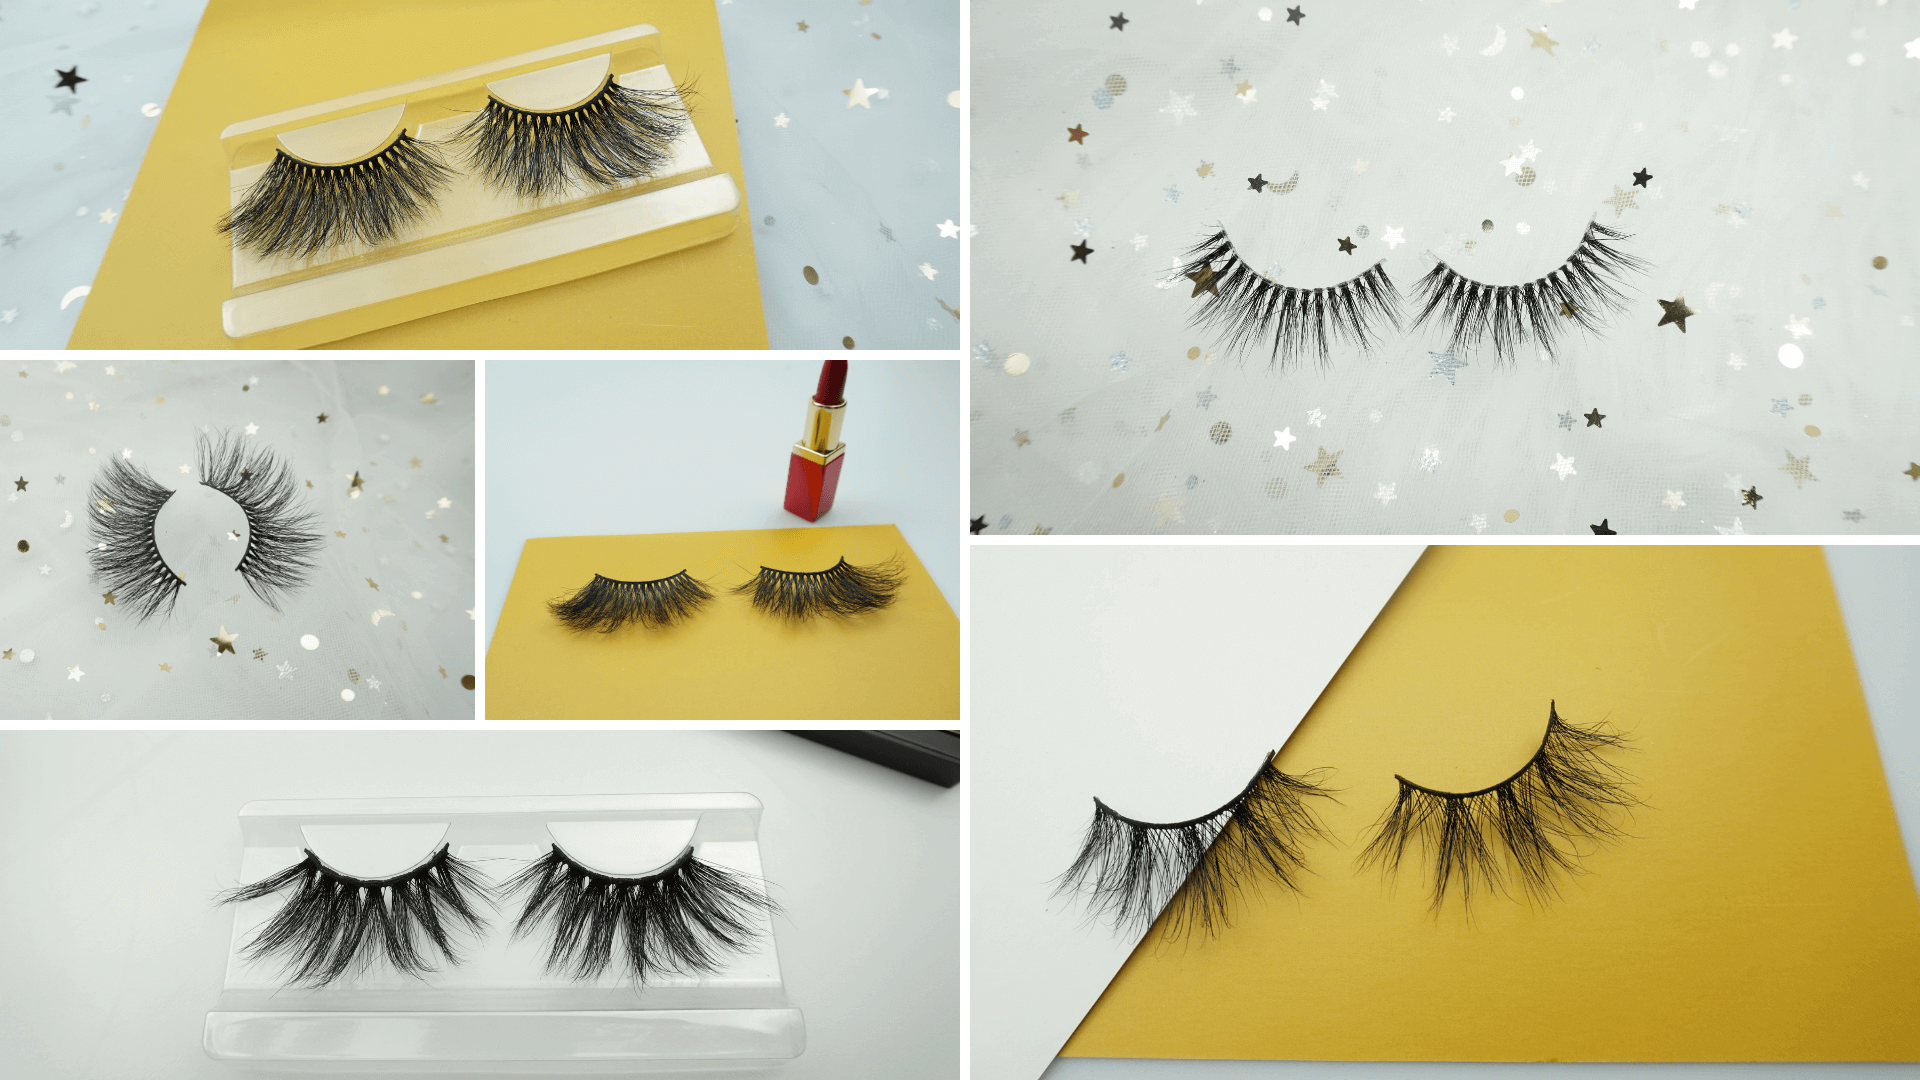 The important thing is the quality of eyelash